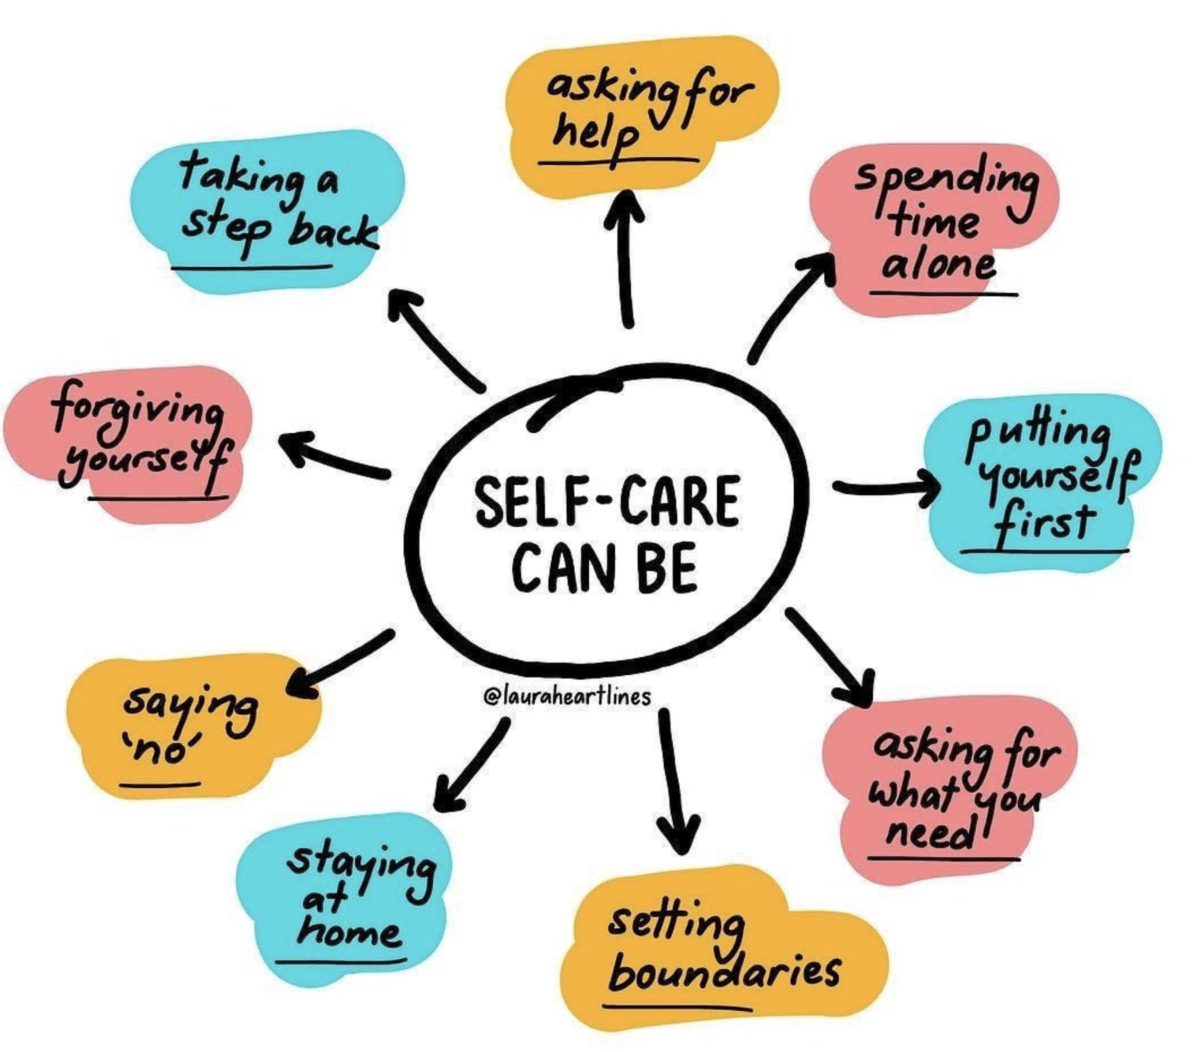 Infographic showing ideas about what self-care can be.